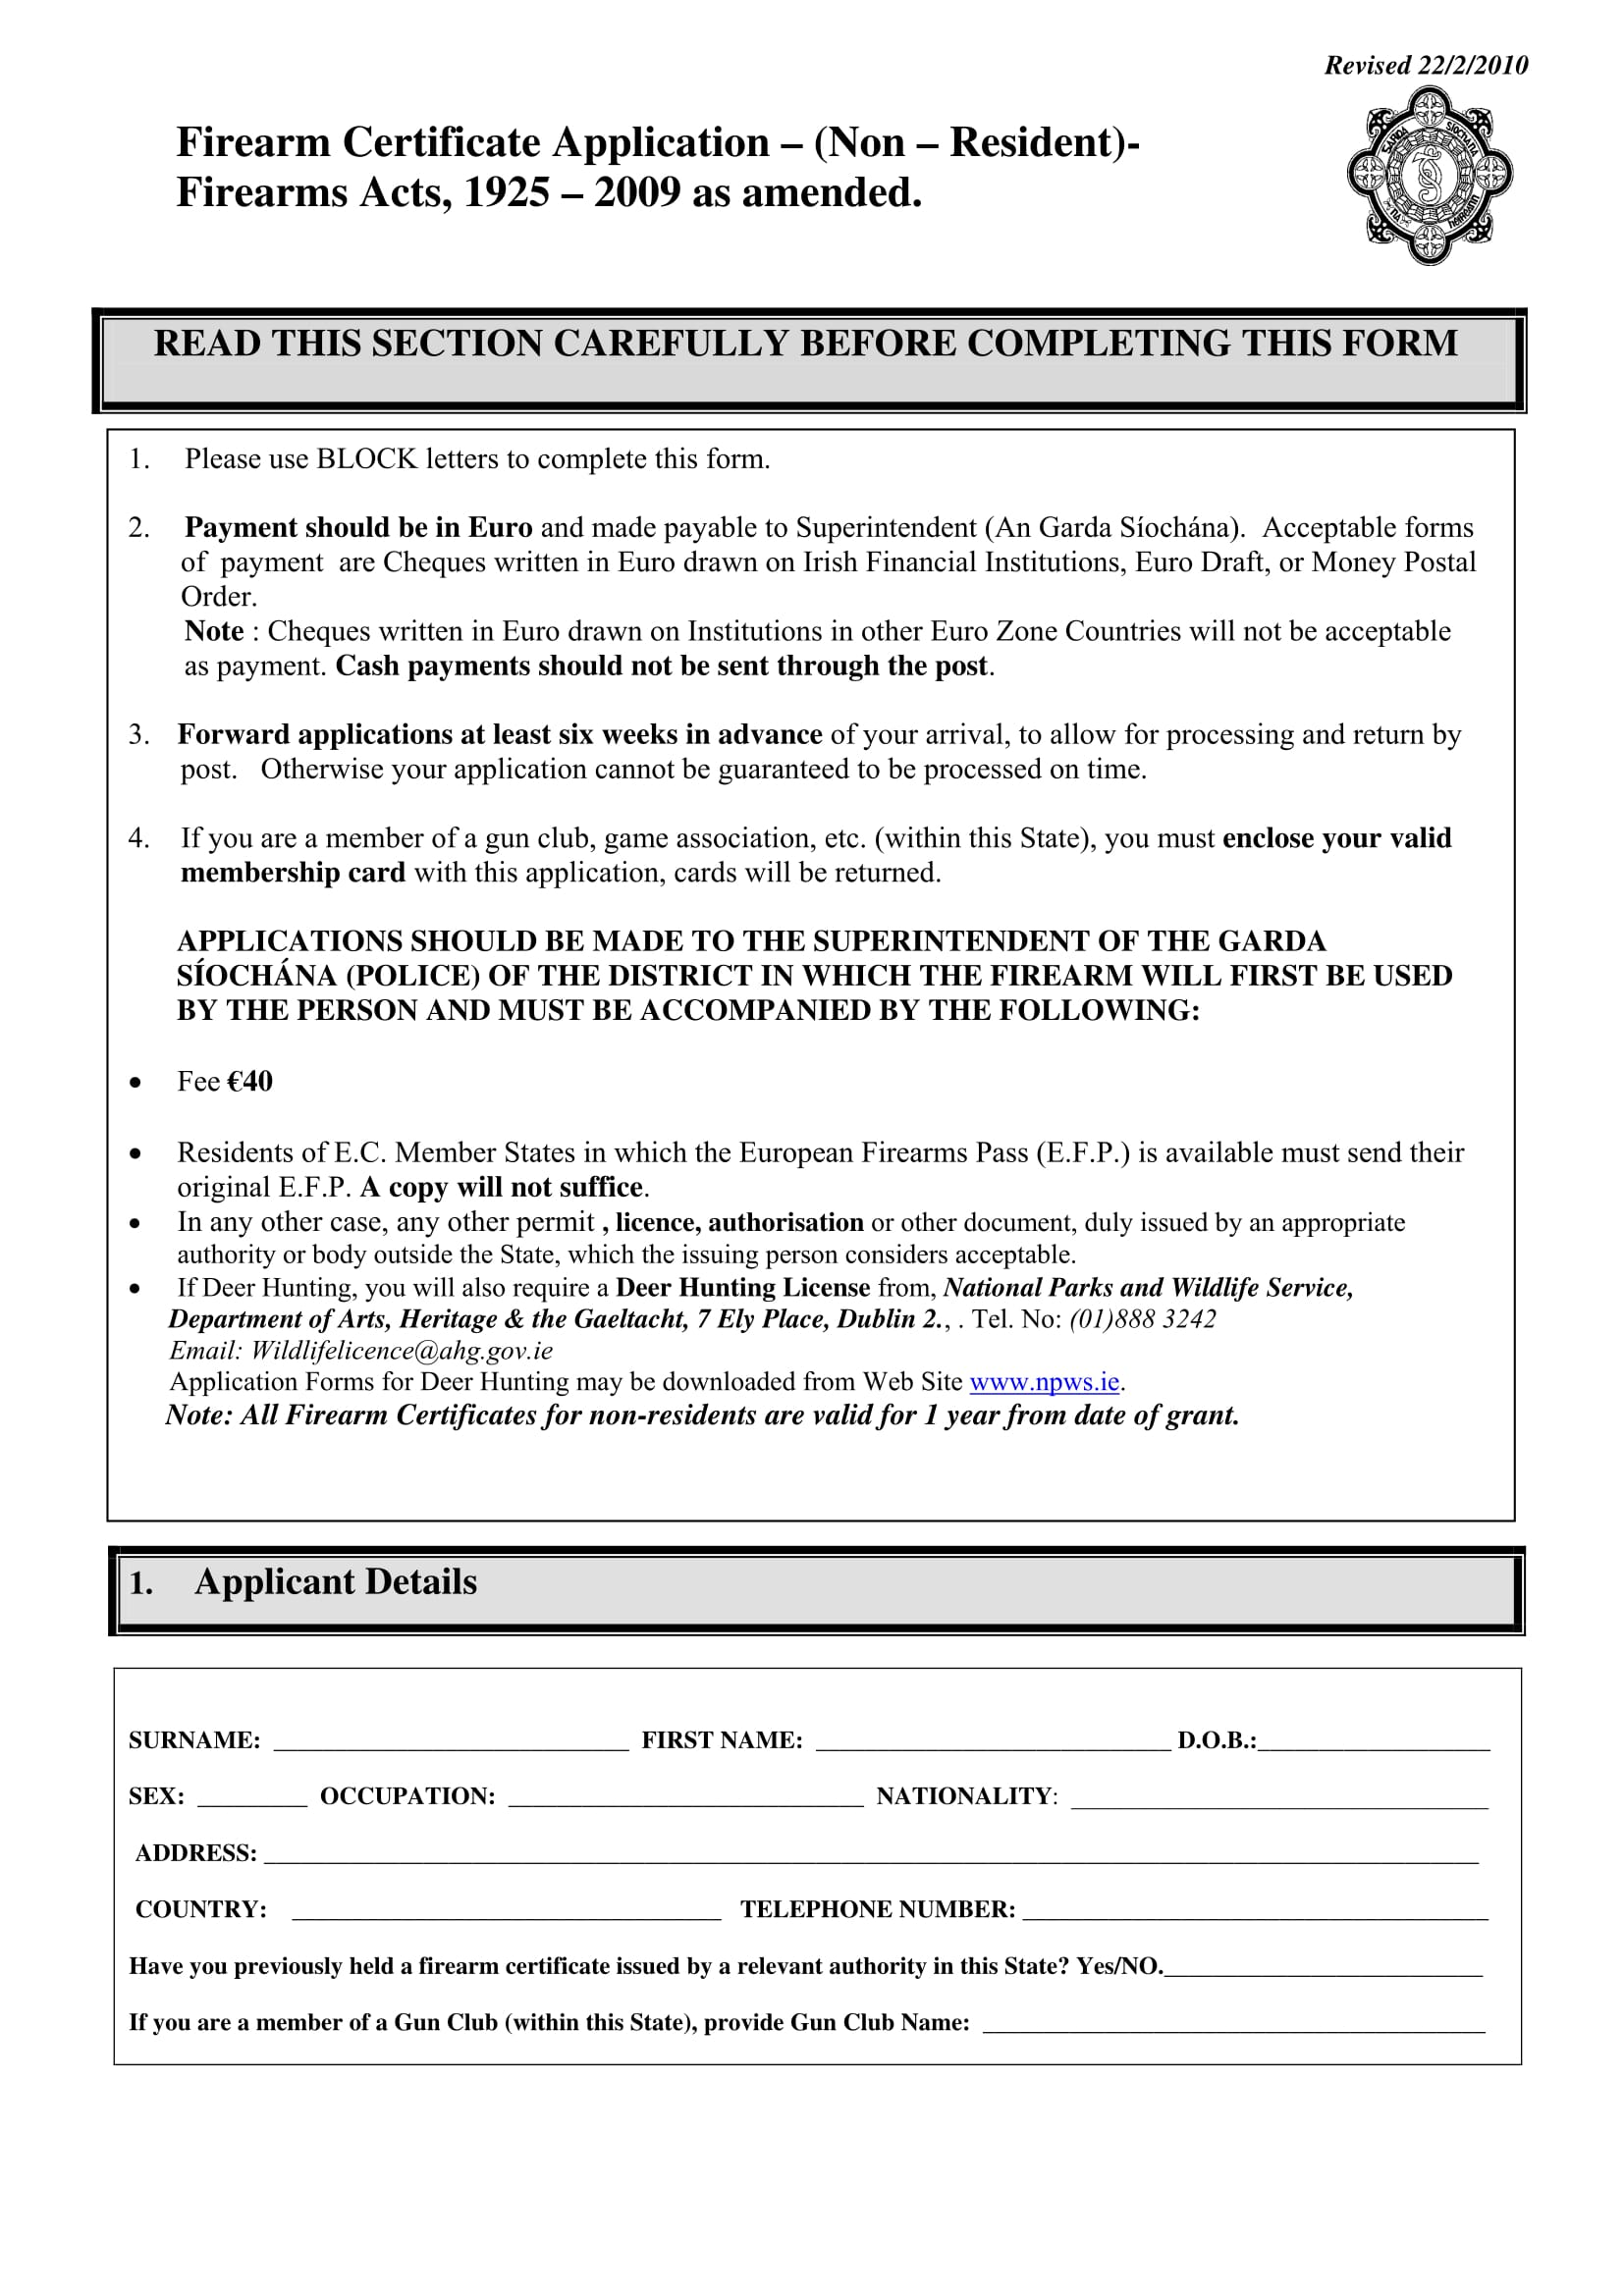 firearm certificate application for non residents